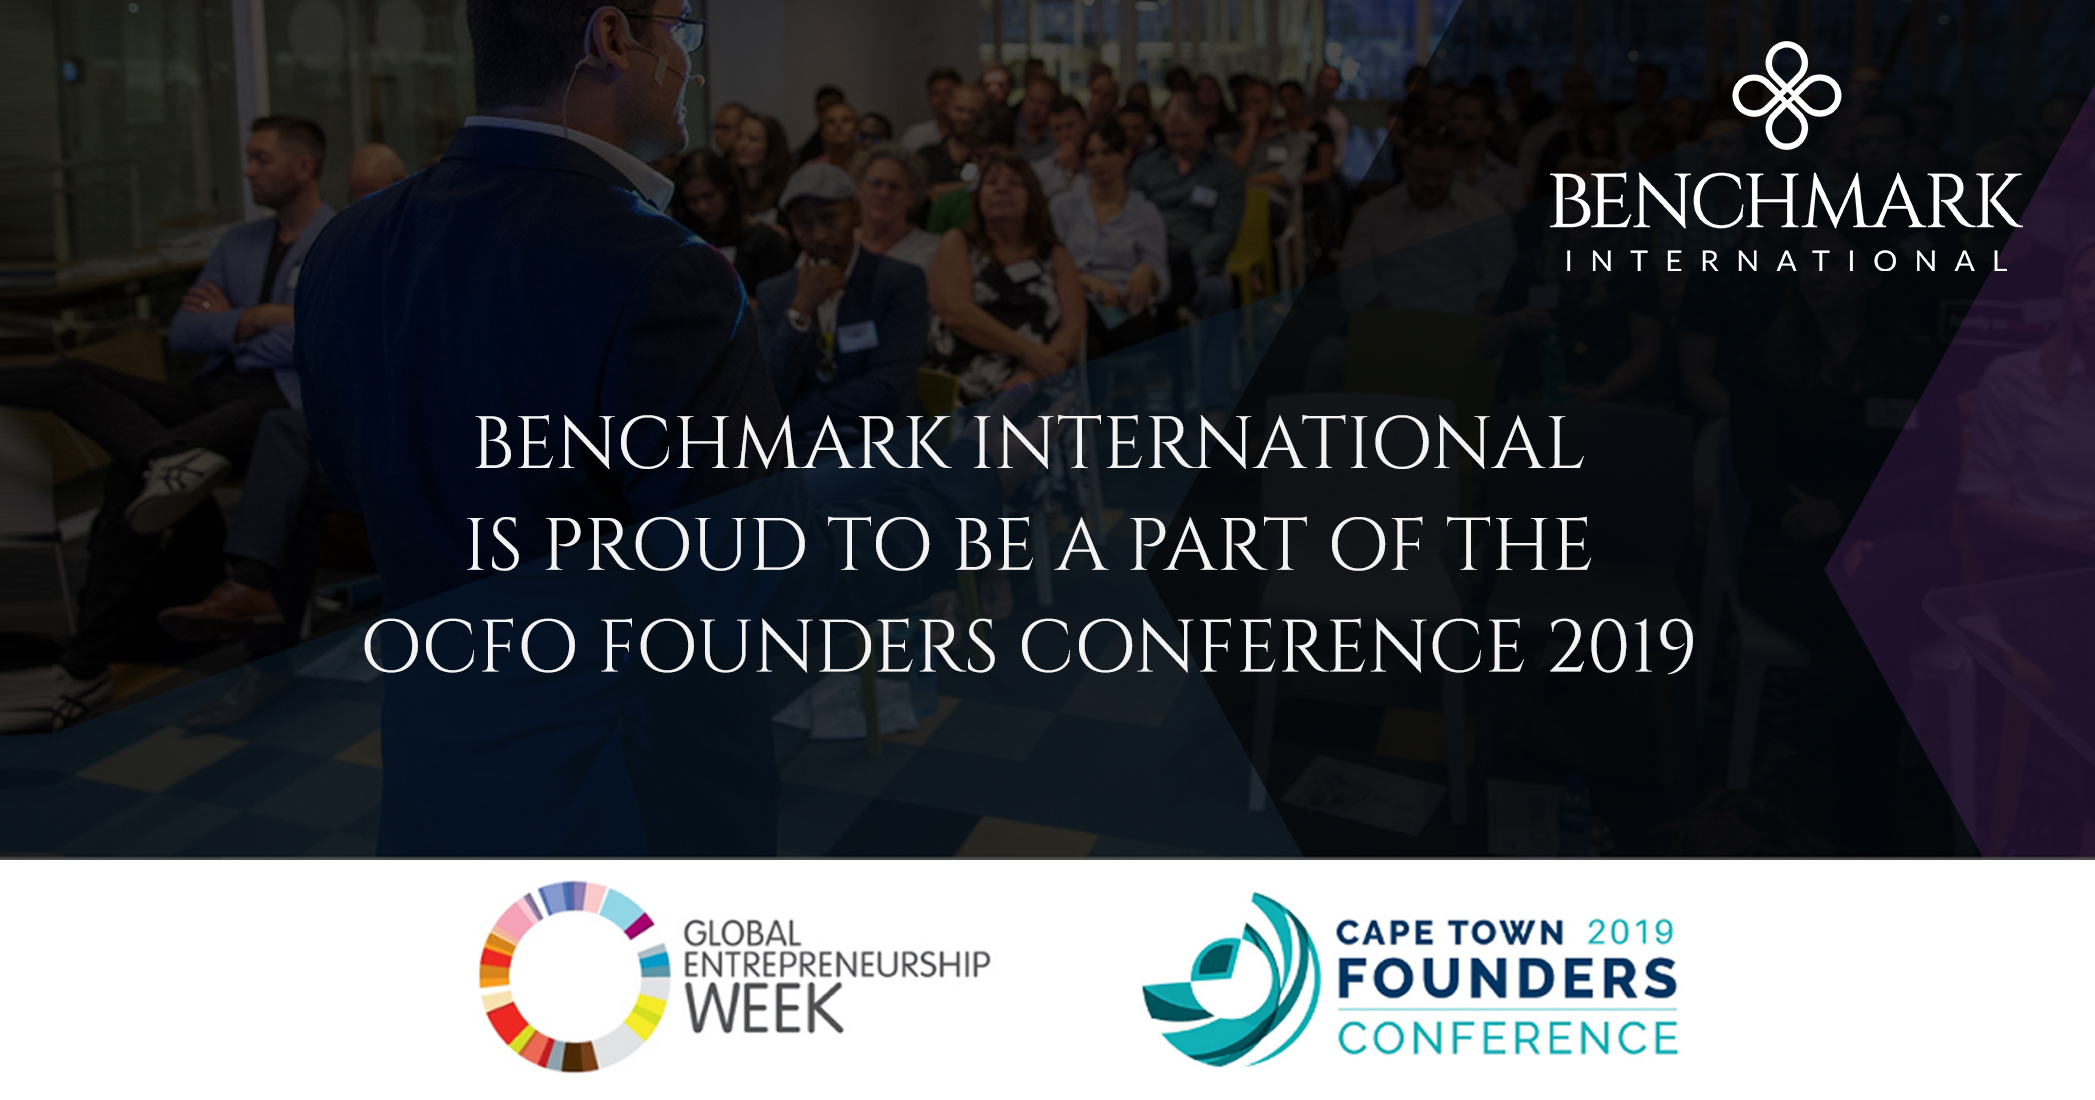 Benchmark International is proud to be a part of the OCFO Founders Conference 2019